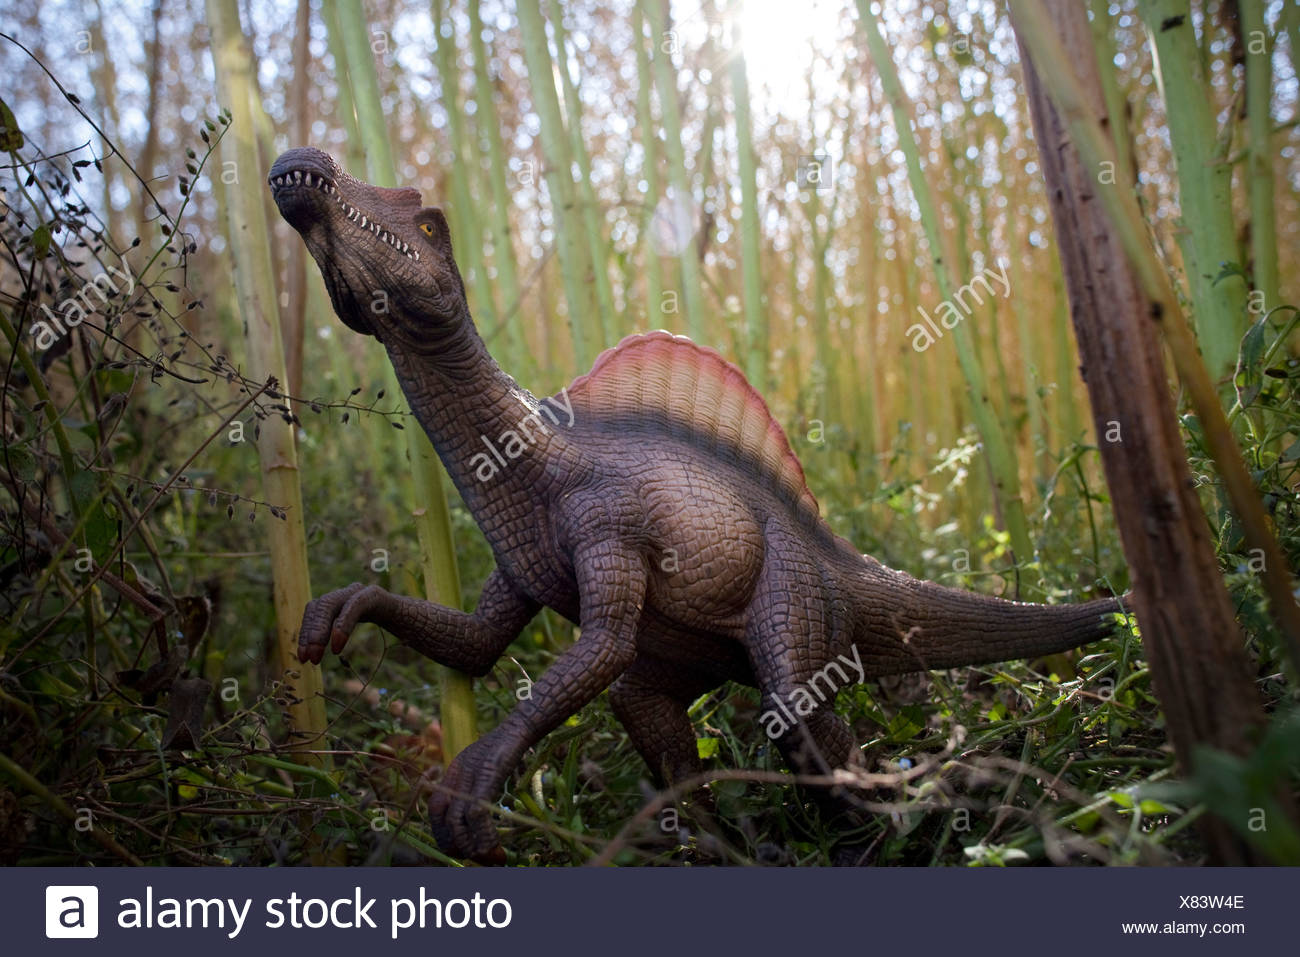 Toy spinosaurus amidst bamboo stalks - Stock Image